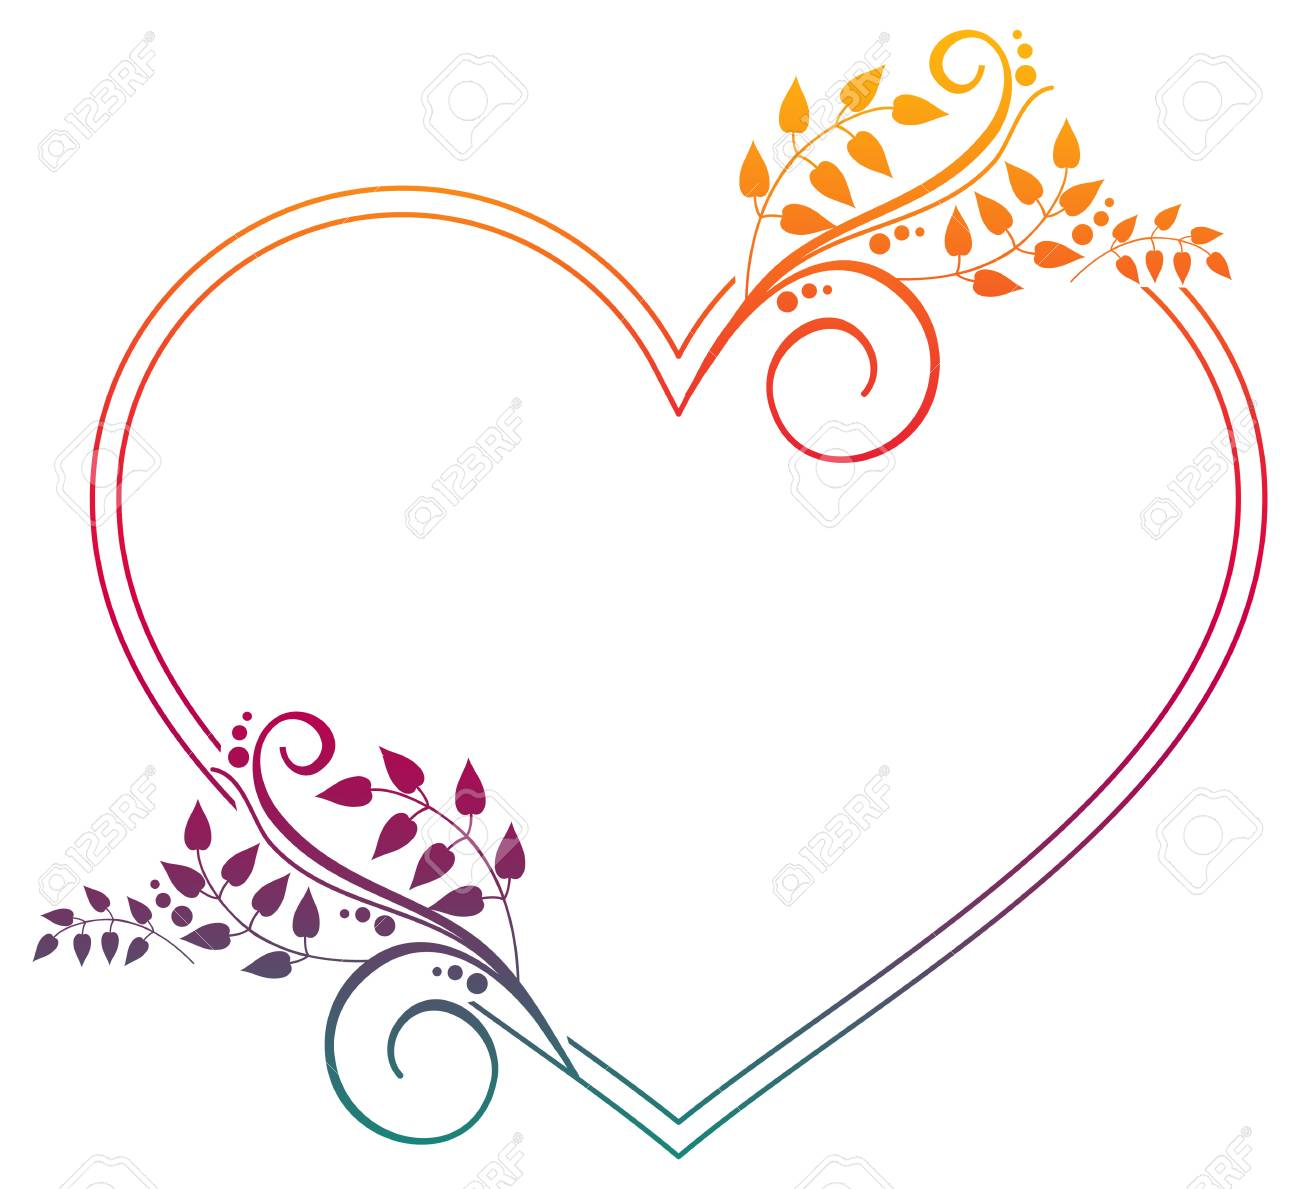 Heart Shaped Frame With Gradient Fill Raster Clip Art Stock Photo Picture And Royalty Free Image Image 71507272